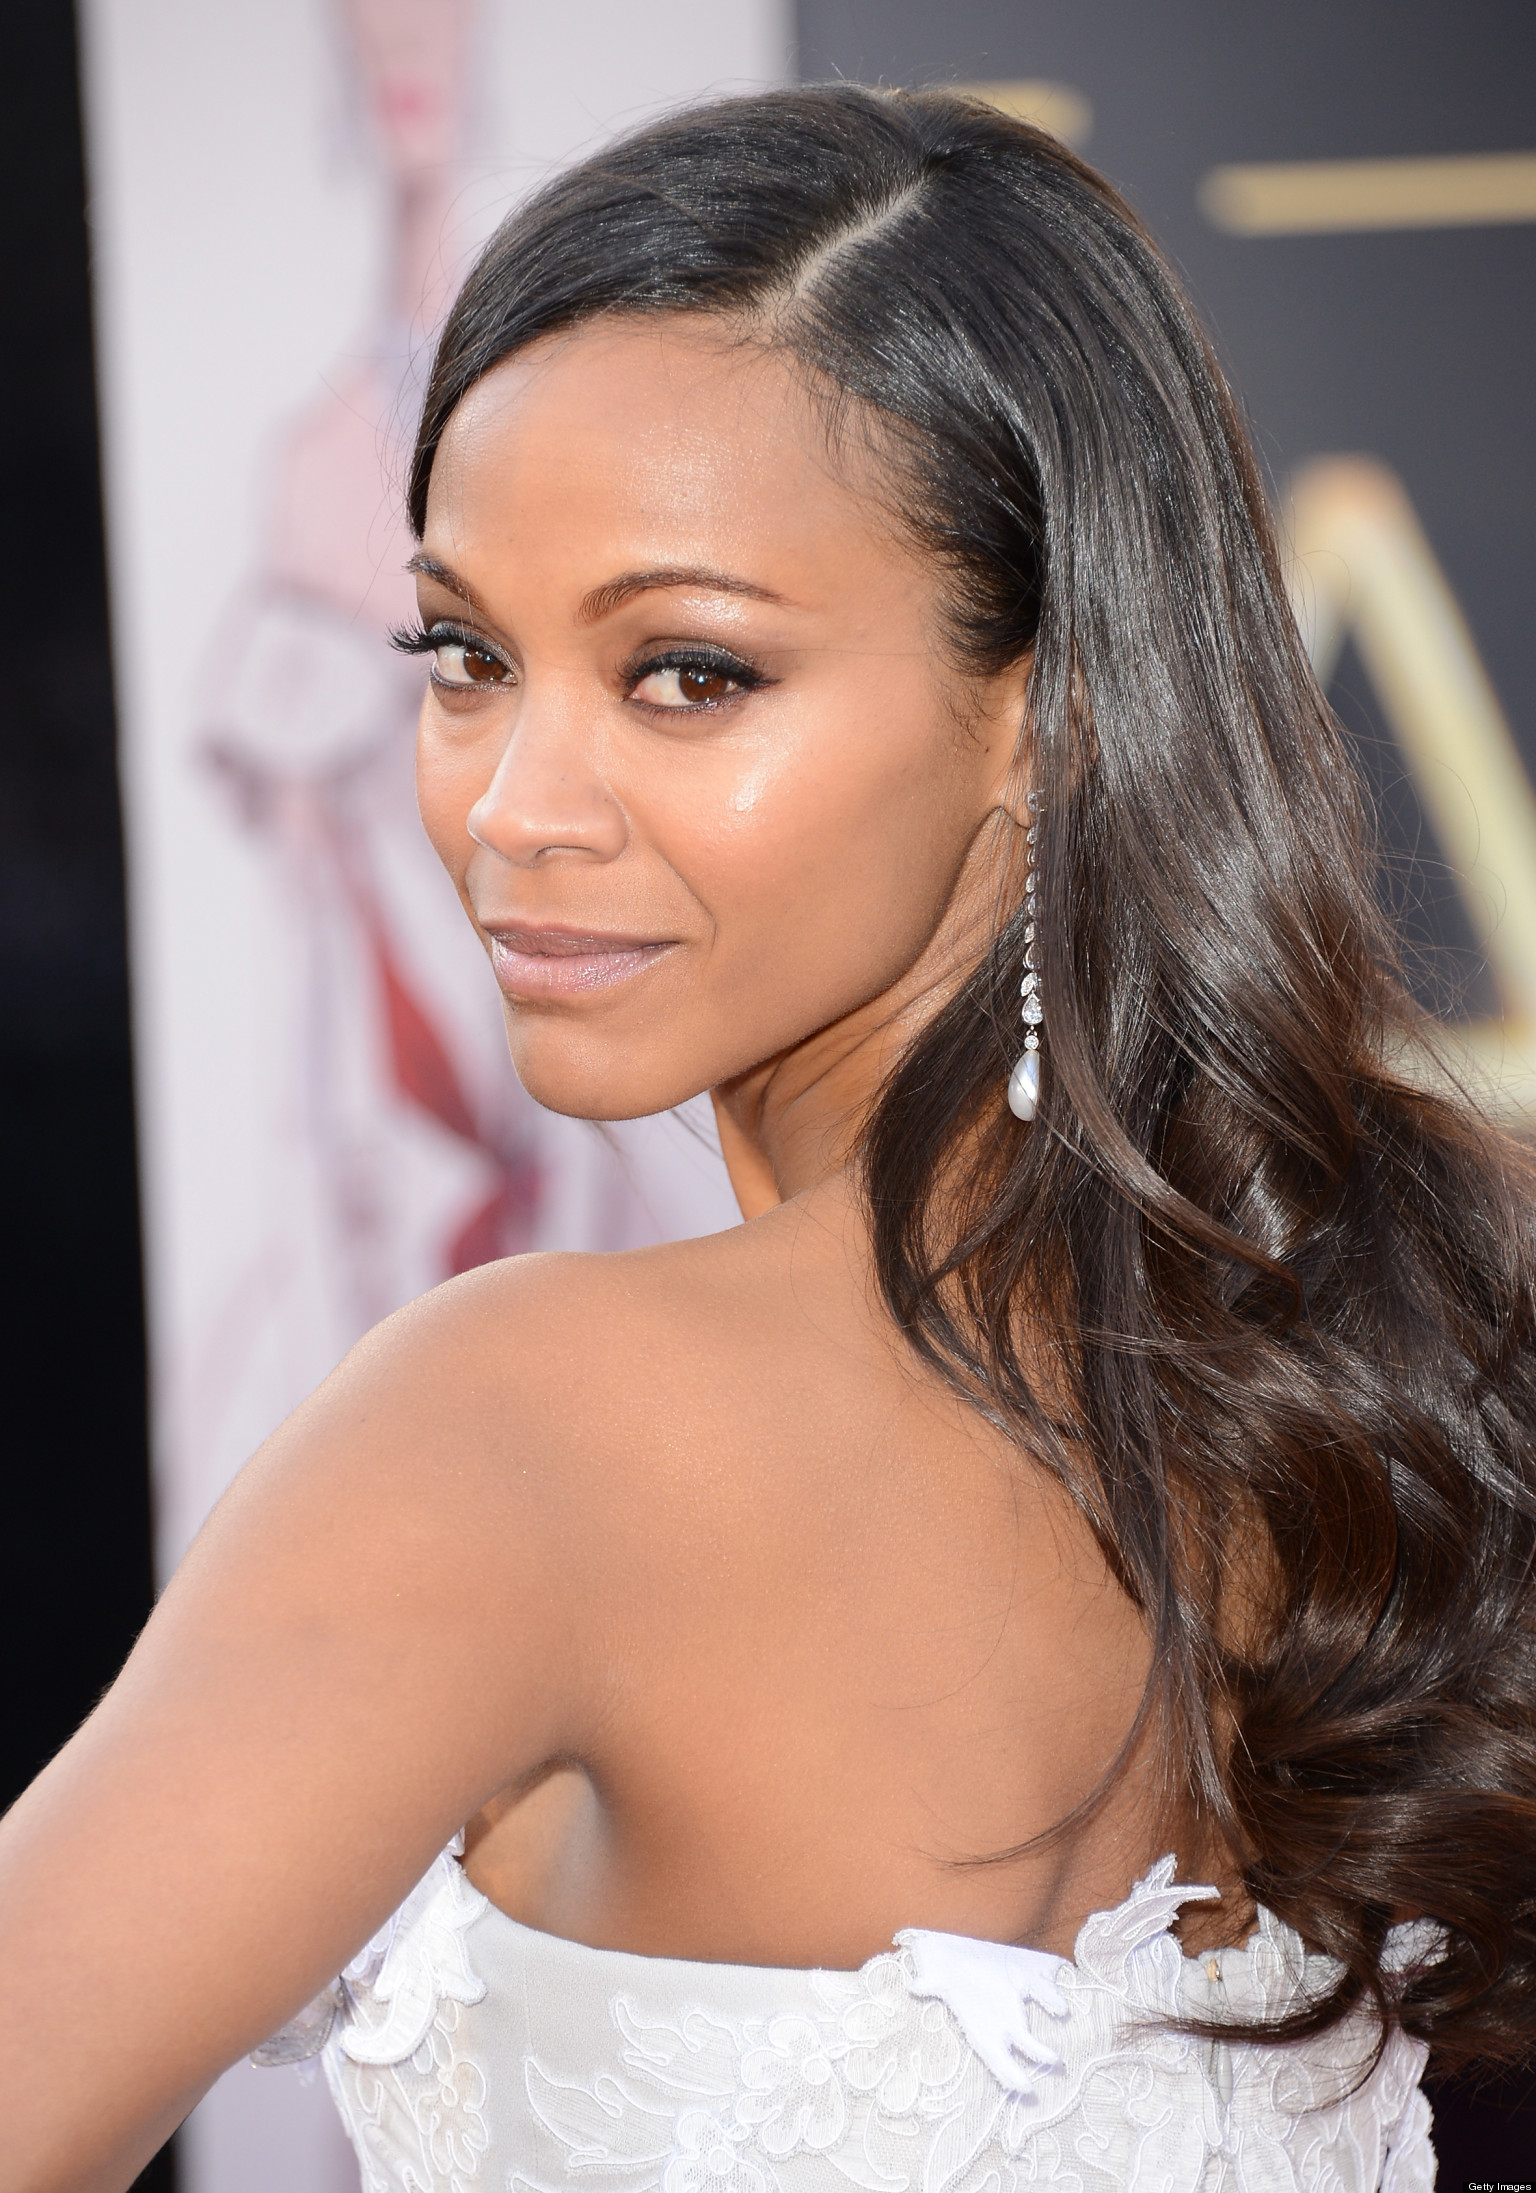 Zoe saldana considers chopping off her hair huffpost for 34 wedding dresses that should have never existed